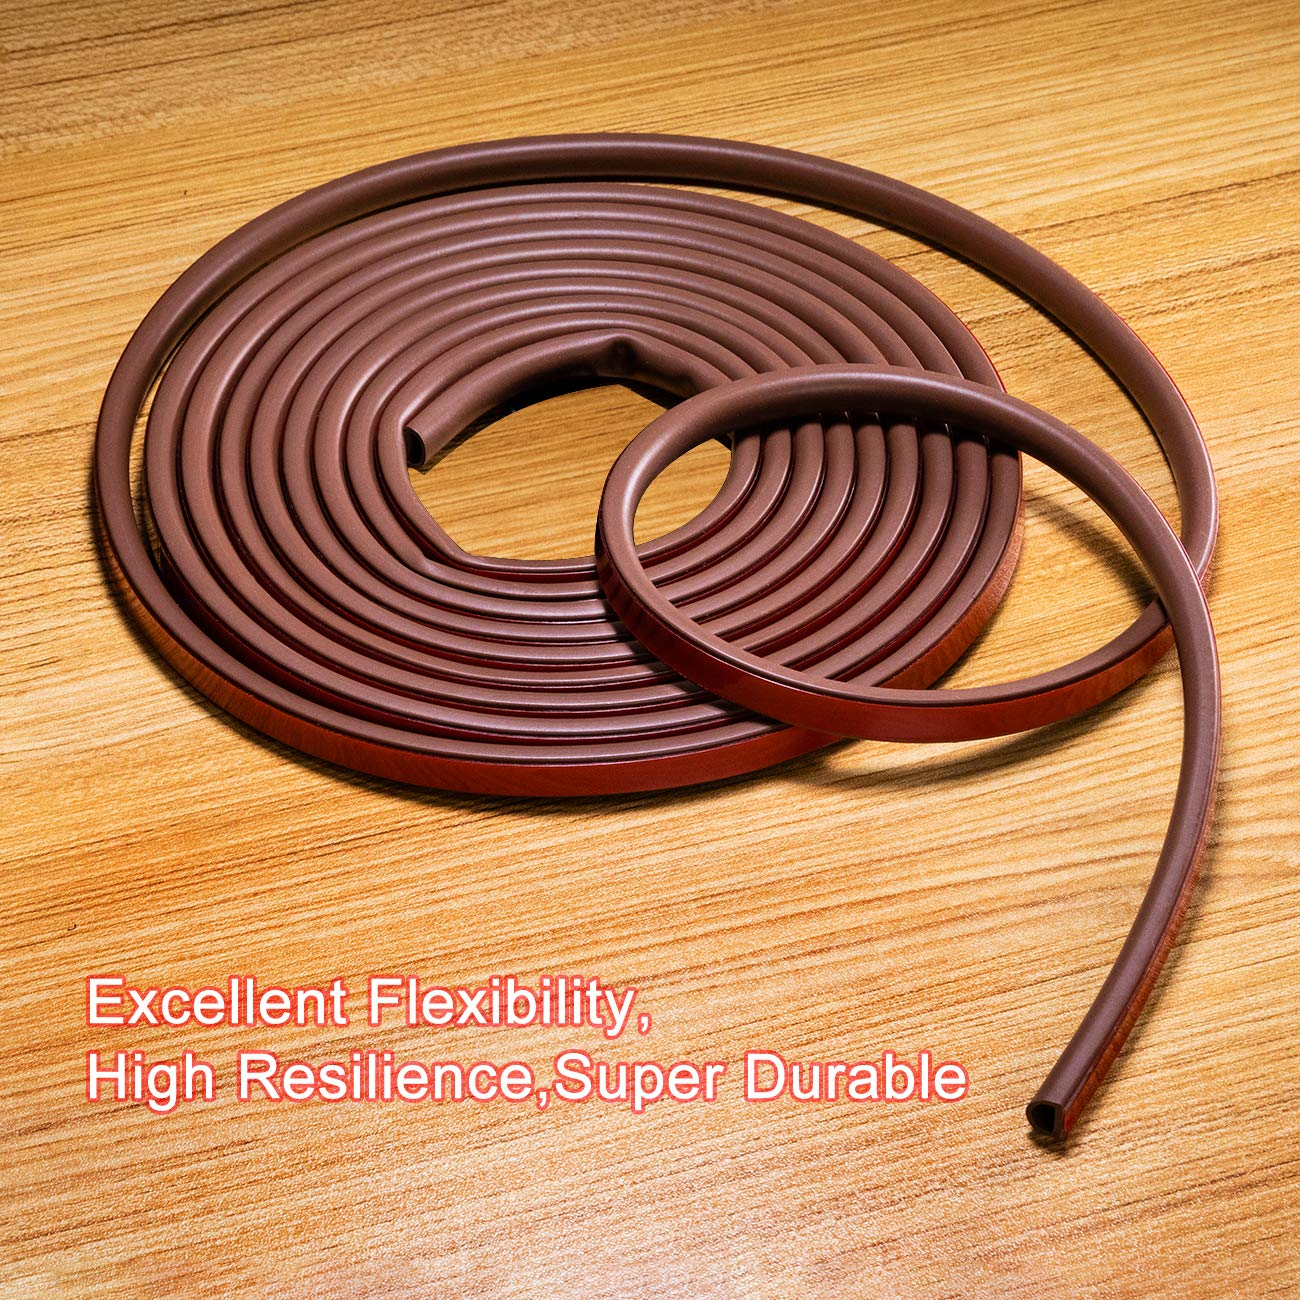 White 9//16 Inch Wide X 1//2 Inch Thick Rubber Weather Seal Door Seal Window Seal Silicone Insulation Strip fowong Silicone Rubber Gap Seal